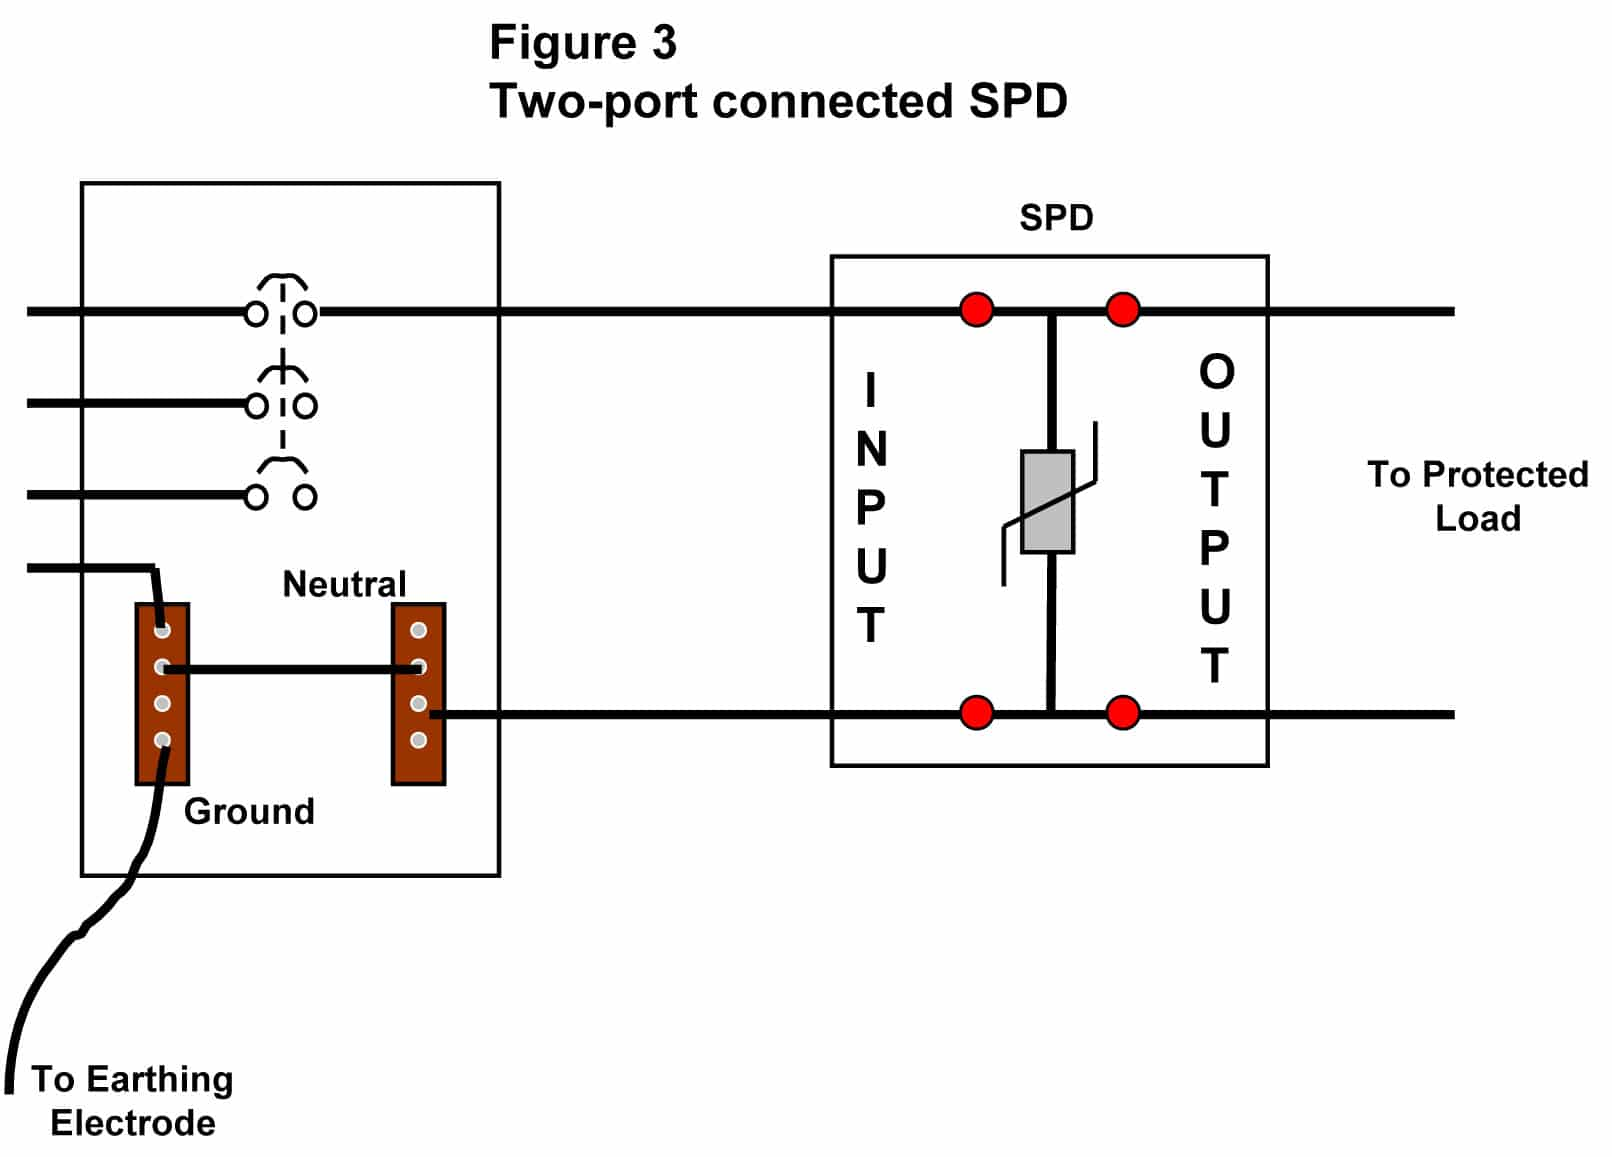 Different Methods Of Connecting An Spd To Electrical Distribution Wiring Diagram Symbols On Examine This Three Phase Motor Control Figure 3 Two Port Connected